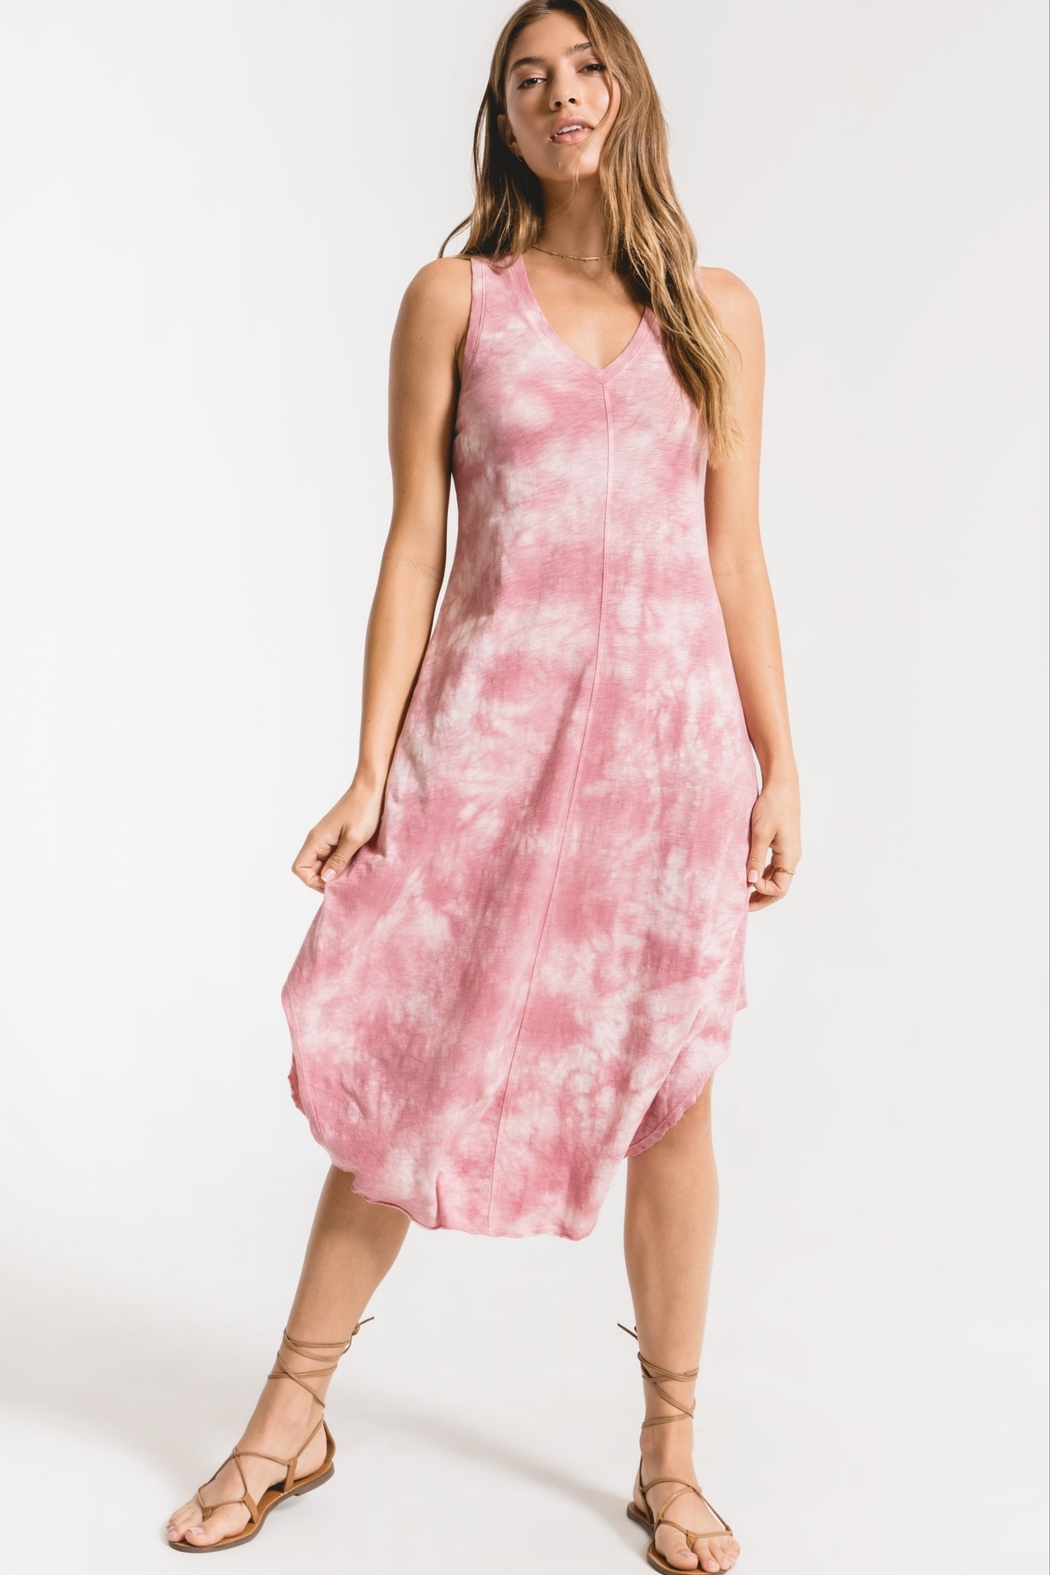 z supply Cloud Tie Dye Maxi Dress - Main Image